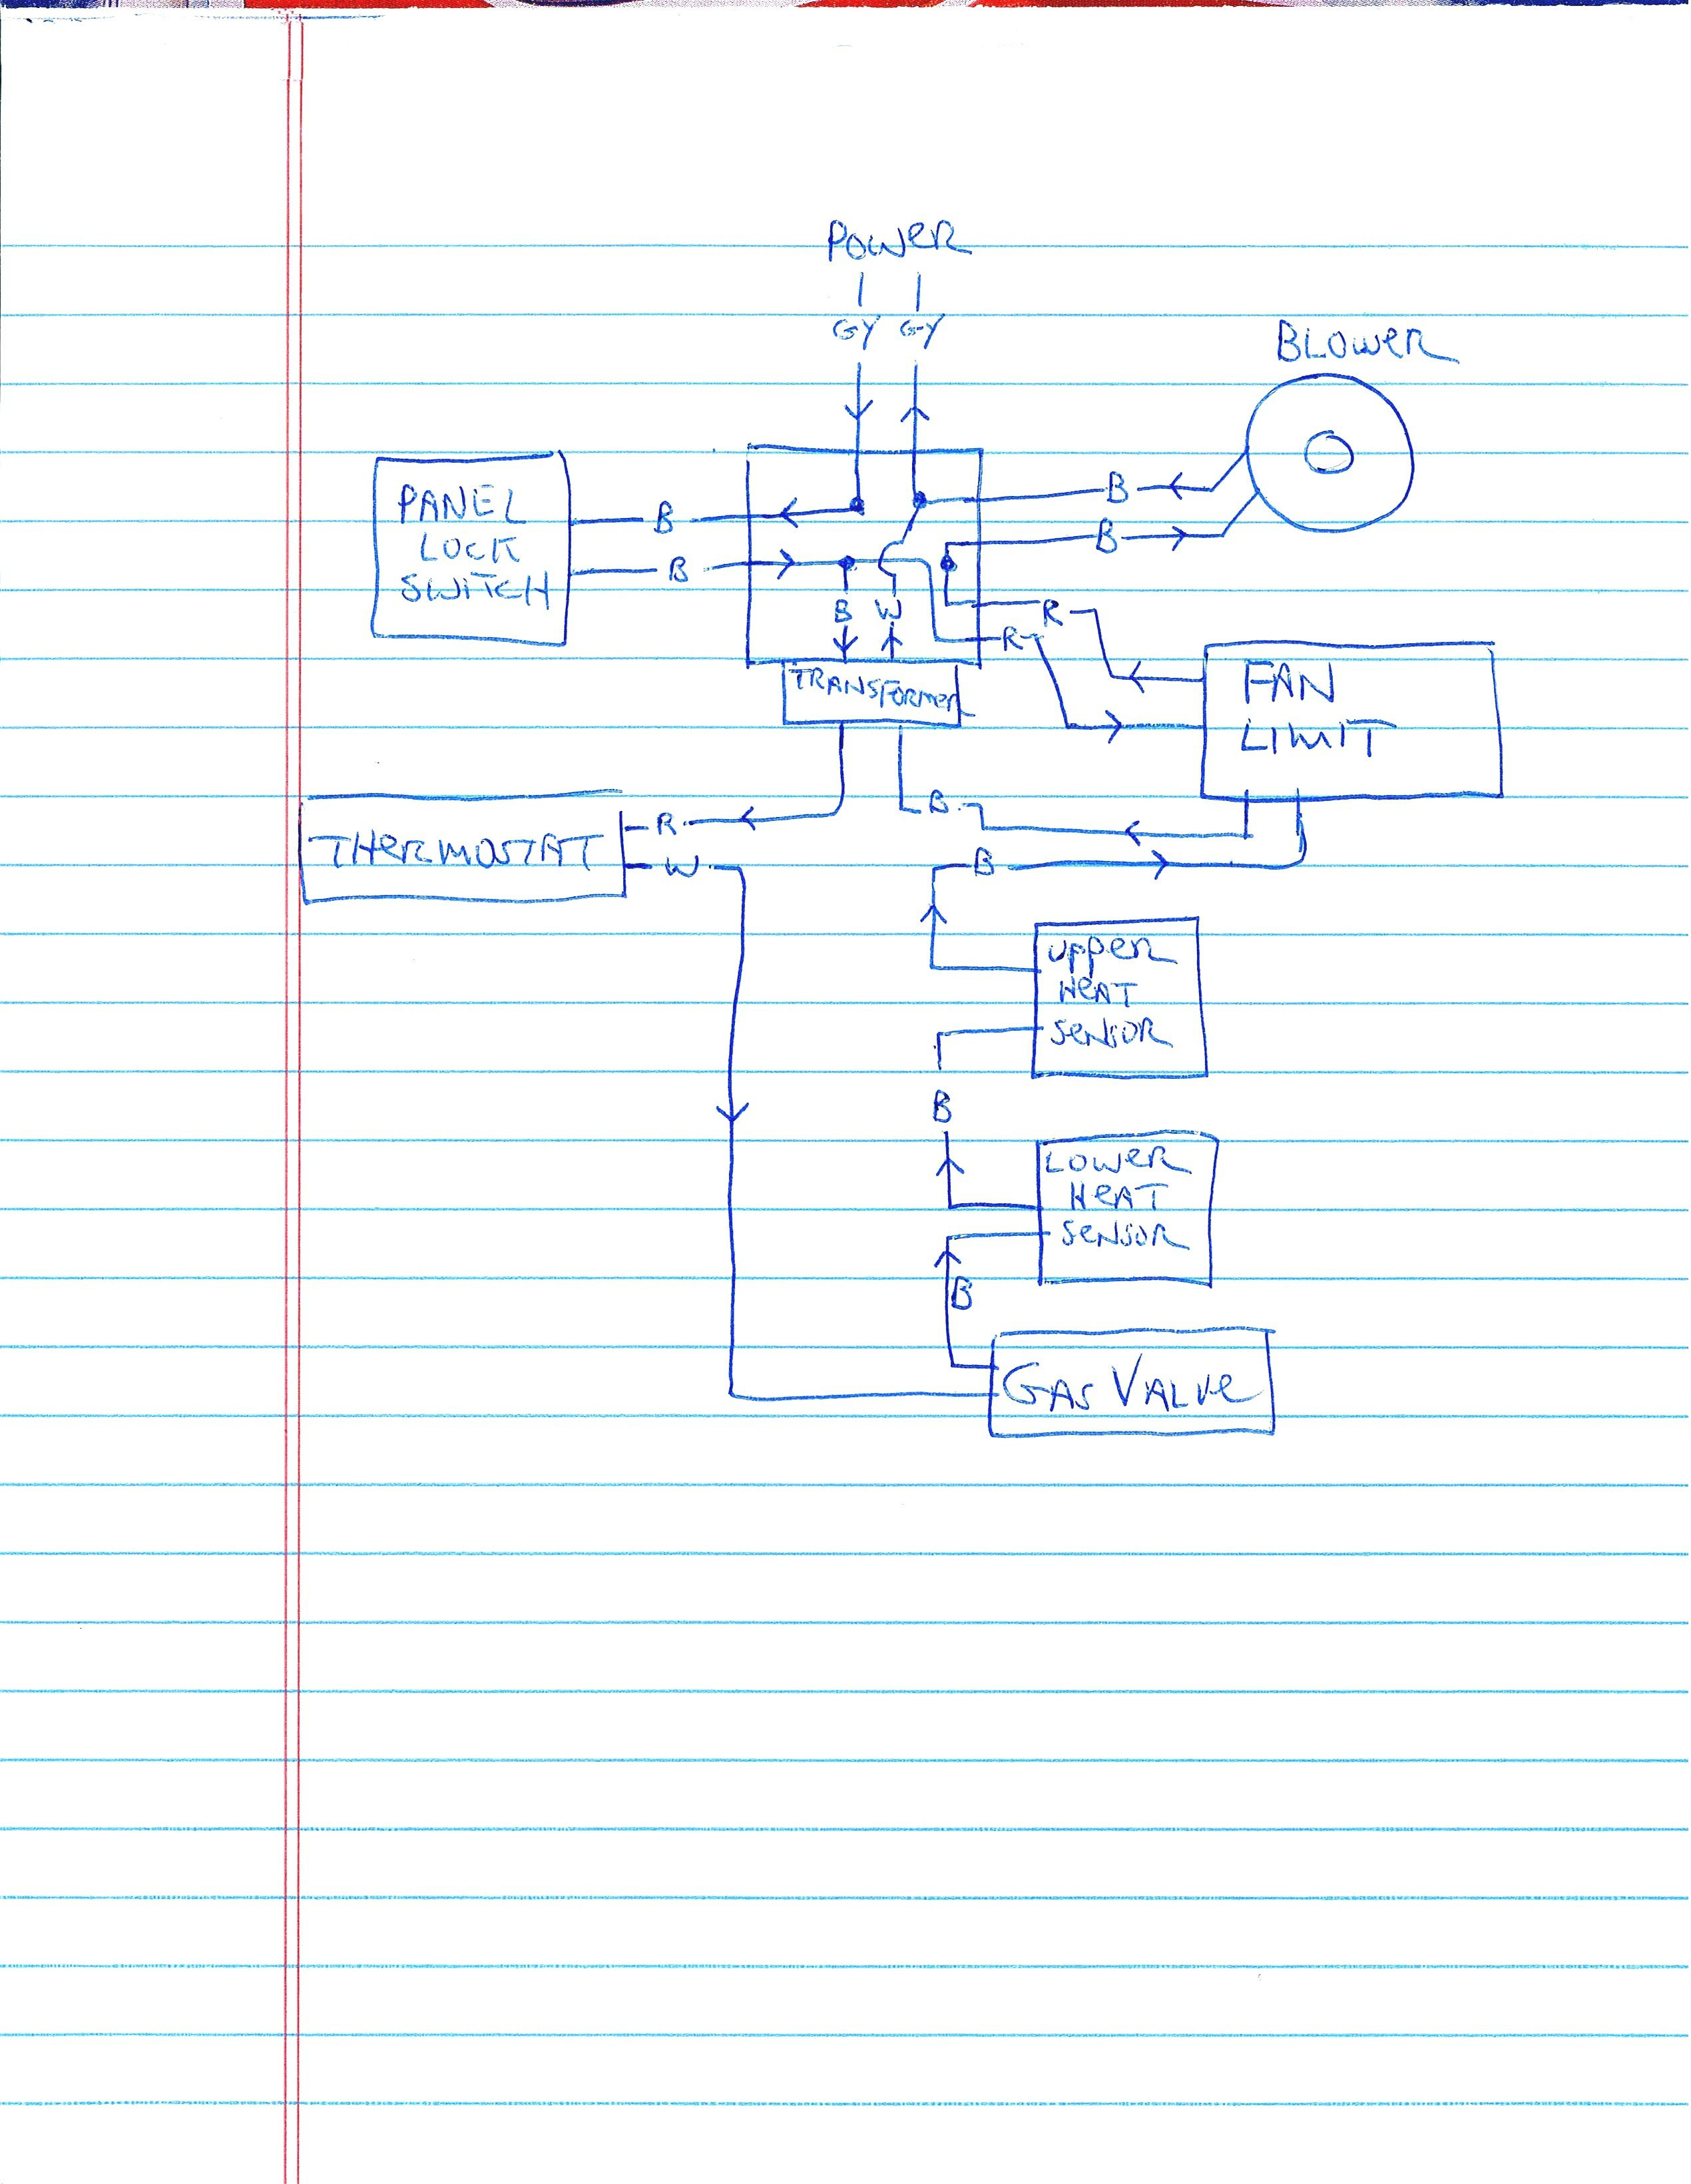 Honeywell Fan Limit Switch Wiring Diagram | Wiring Diagram Image